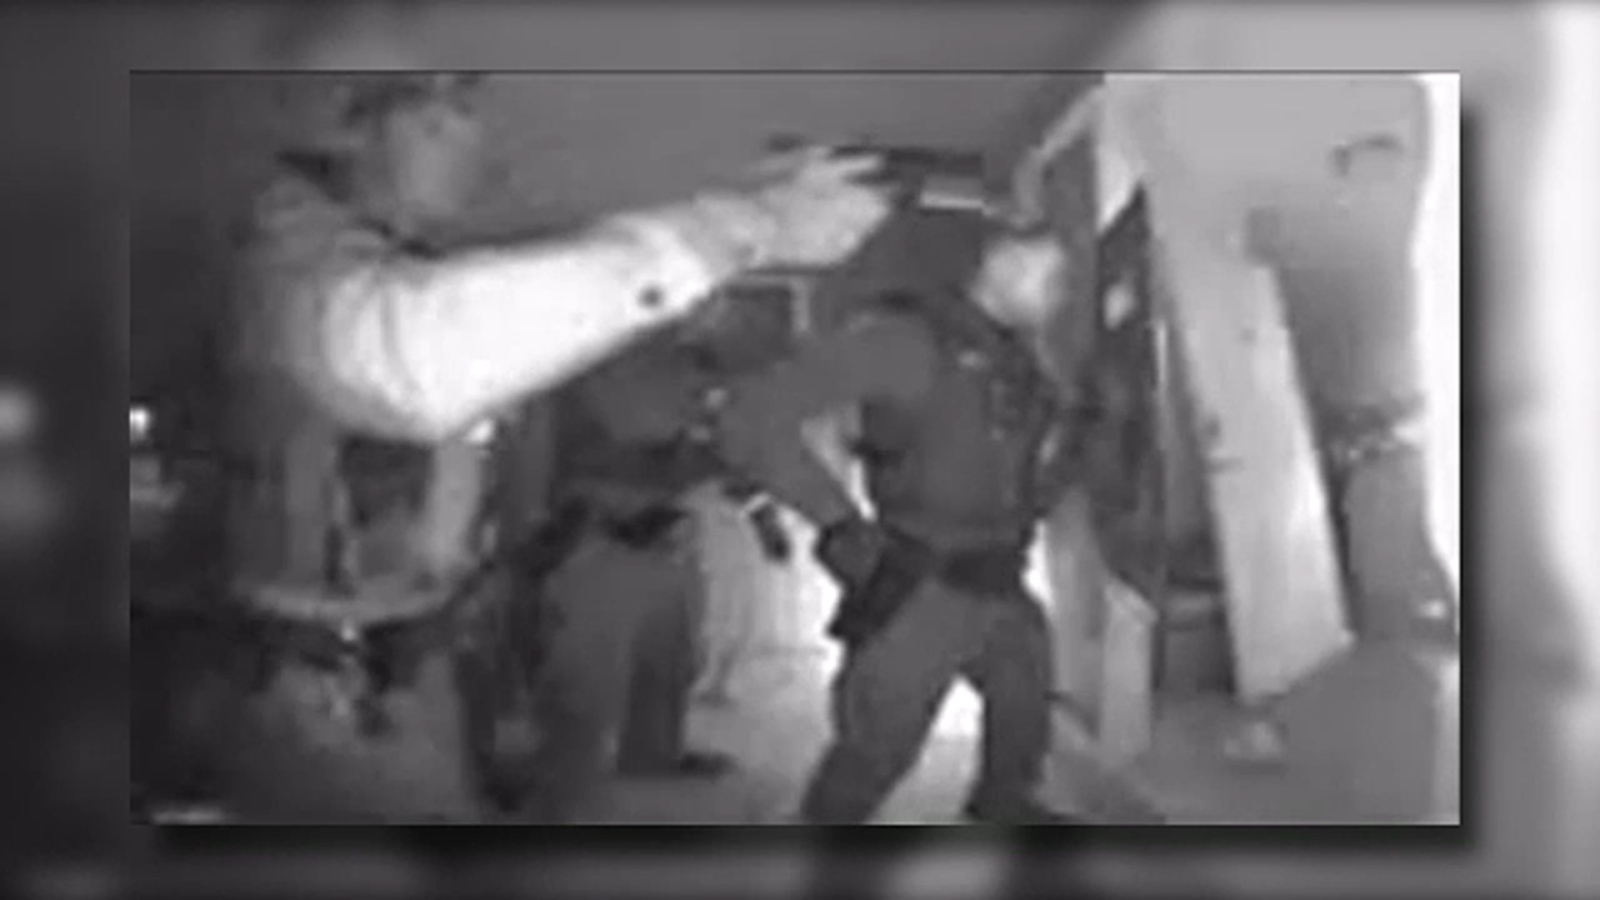 SWAT team with guns drawn raids Arizona home for toddler with fever